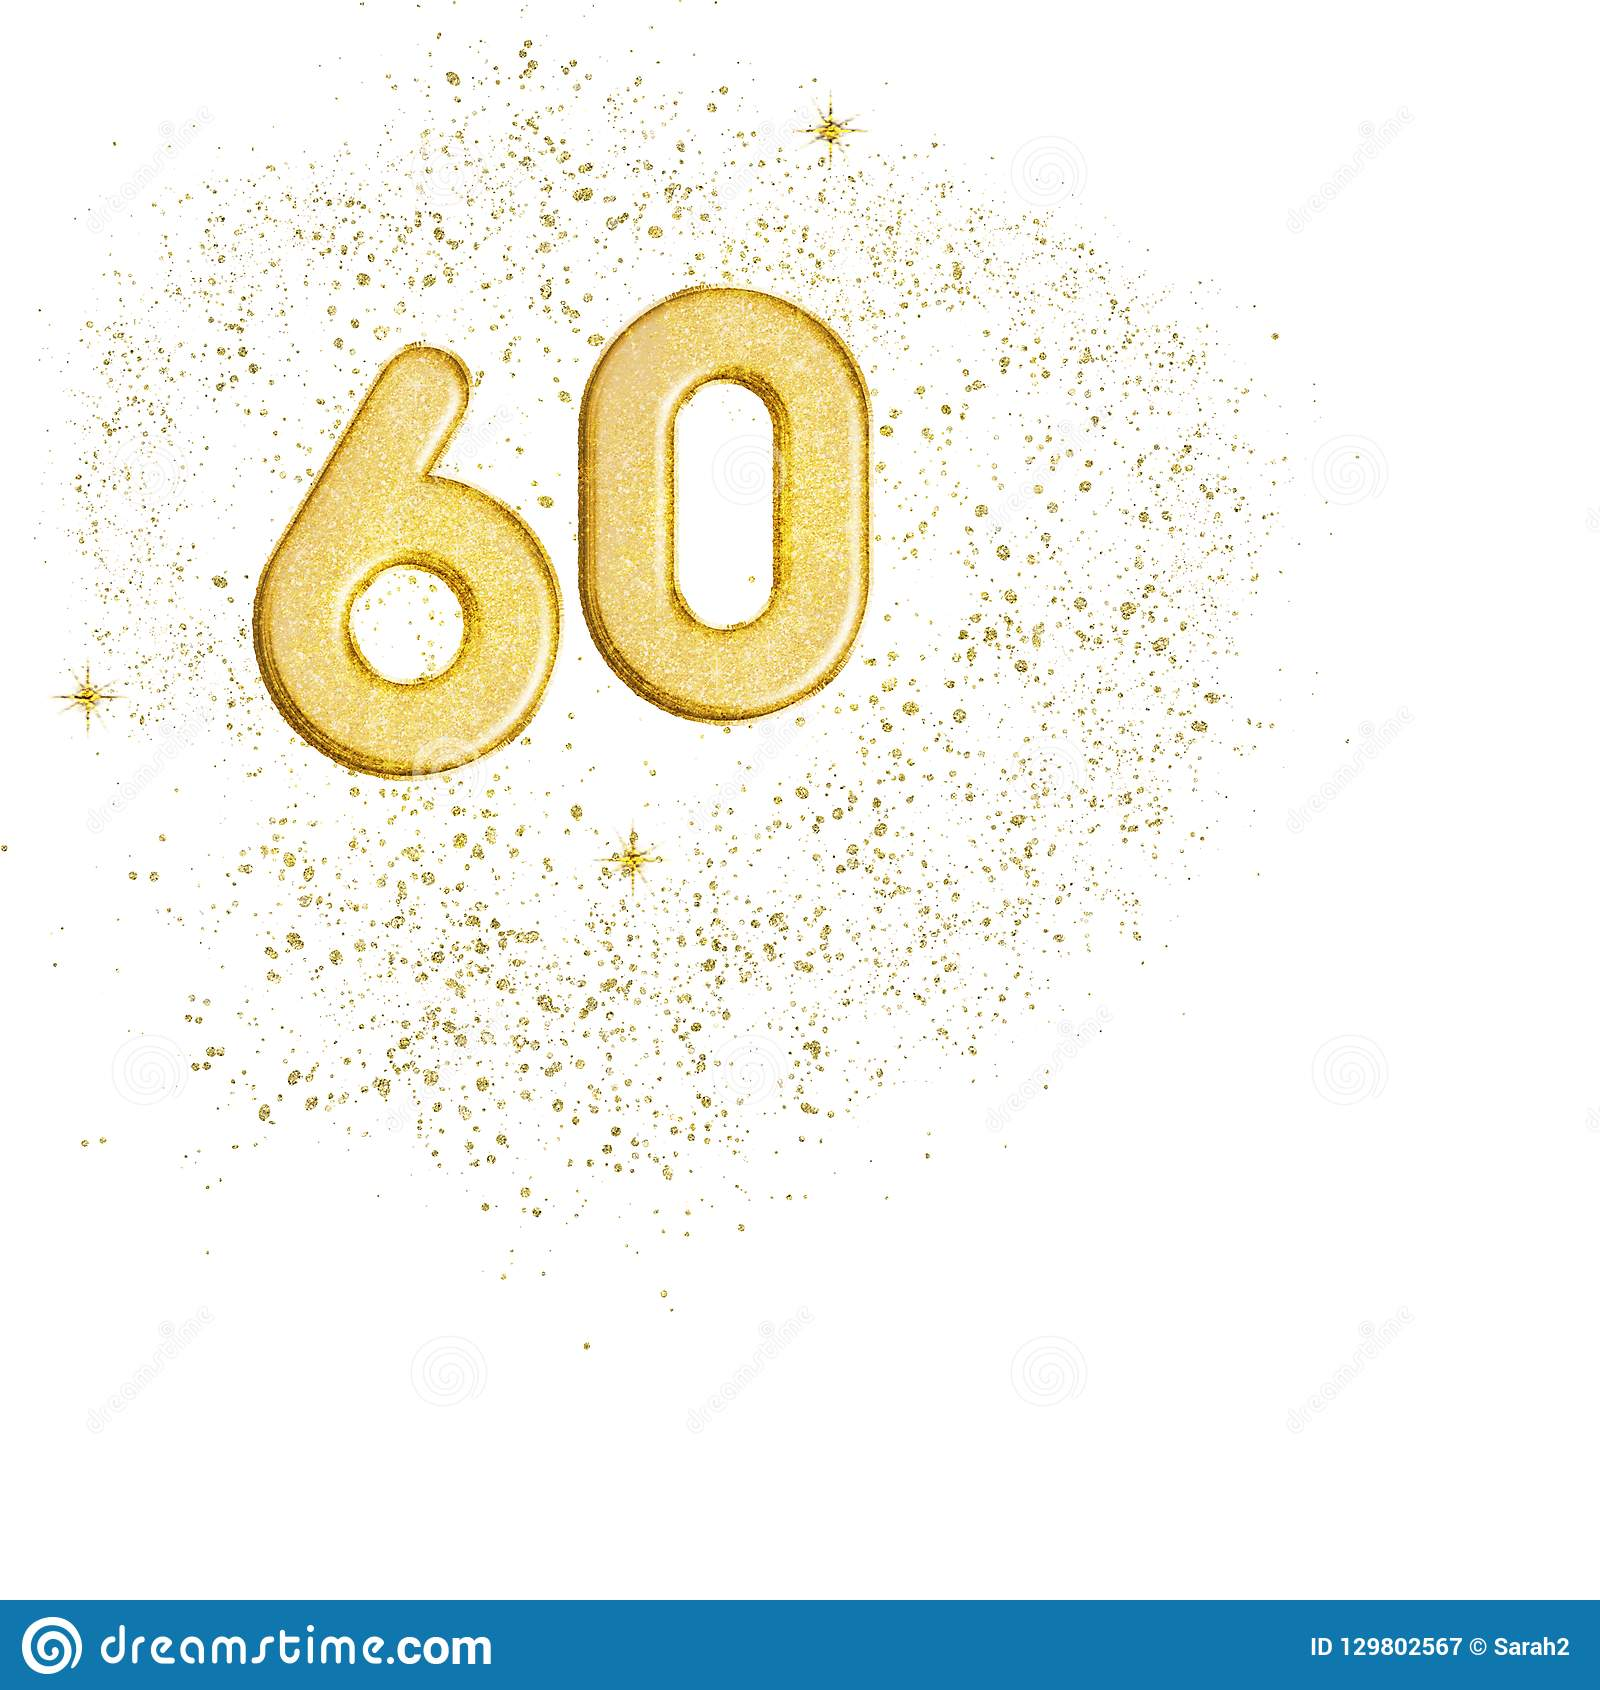 Golden number 60, sixty numbers isolated on white background. Ideal sixtieth wedding anniversary or birthday. Glittery.